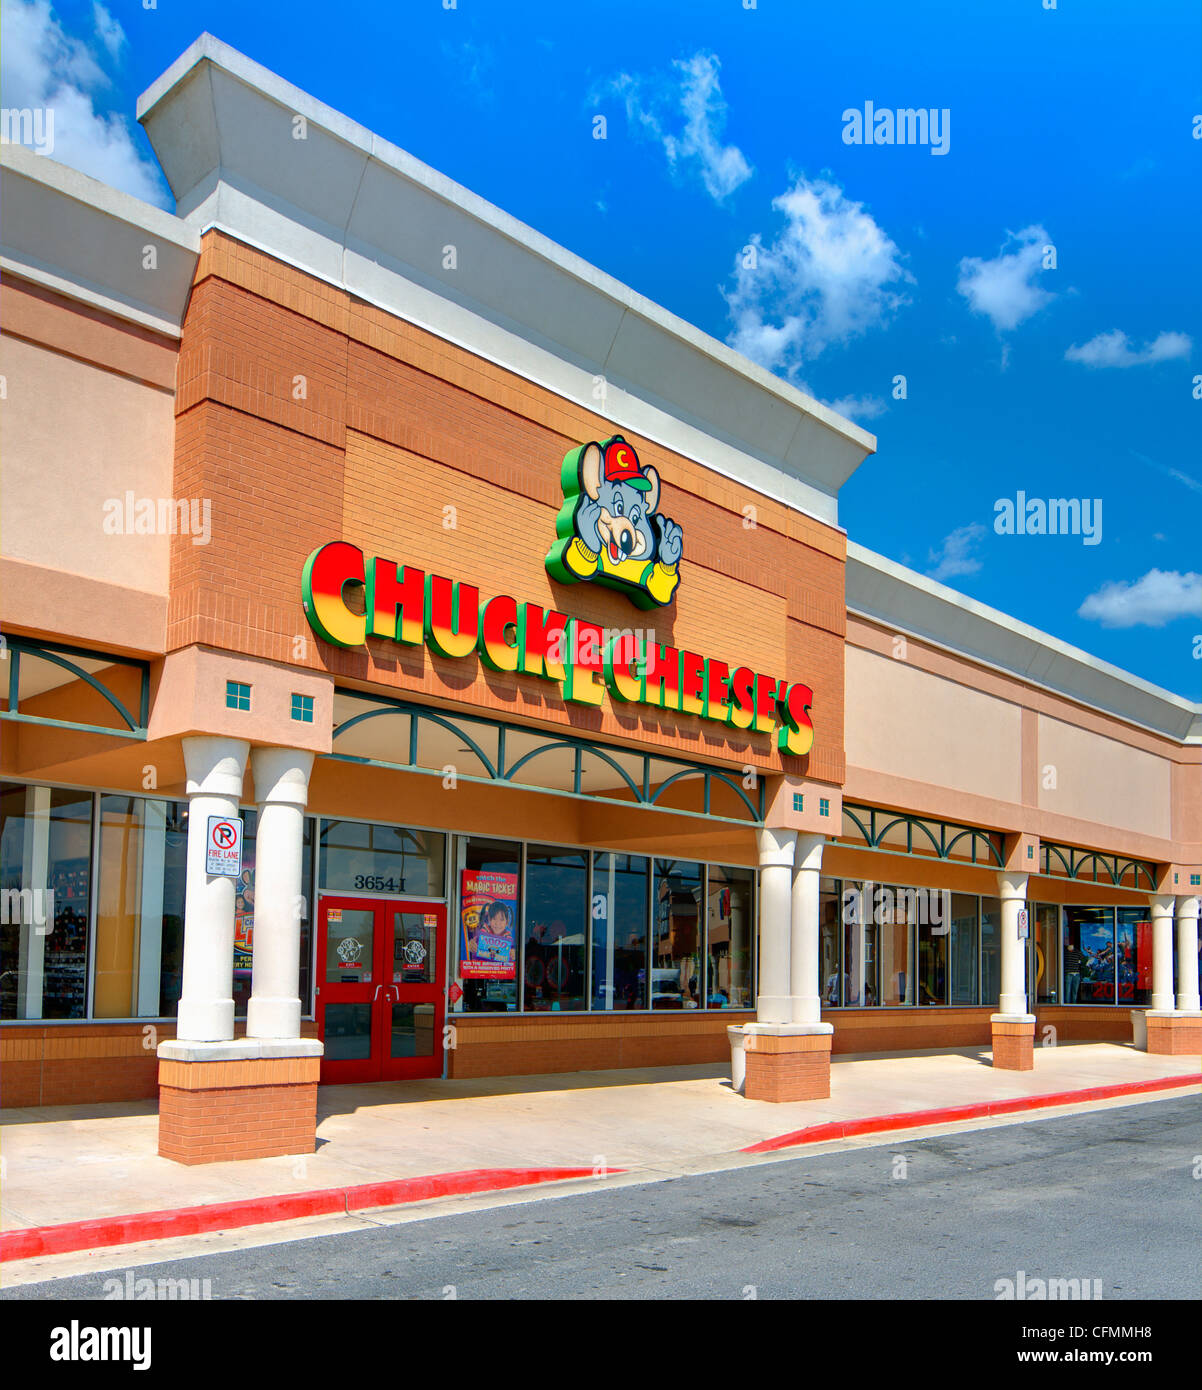 Chuck E. Cheese's is a well-established American family restaurant and arcade with over 500 locations. - Stock Image